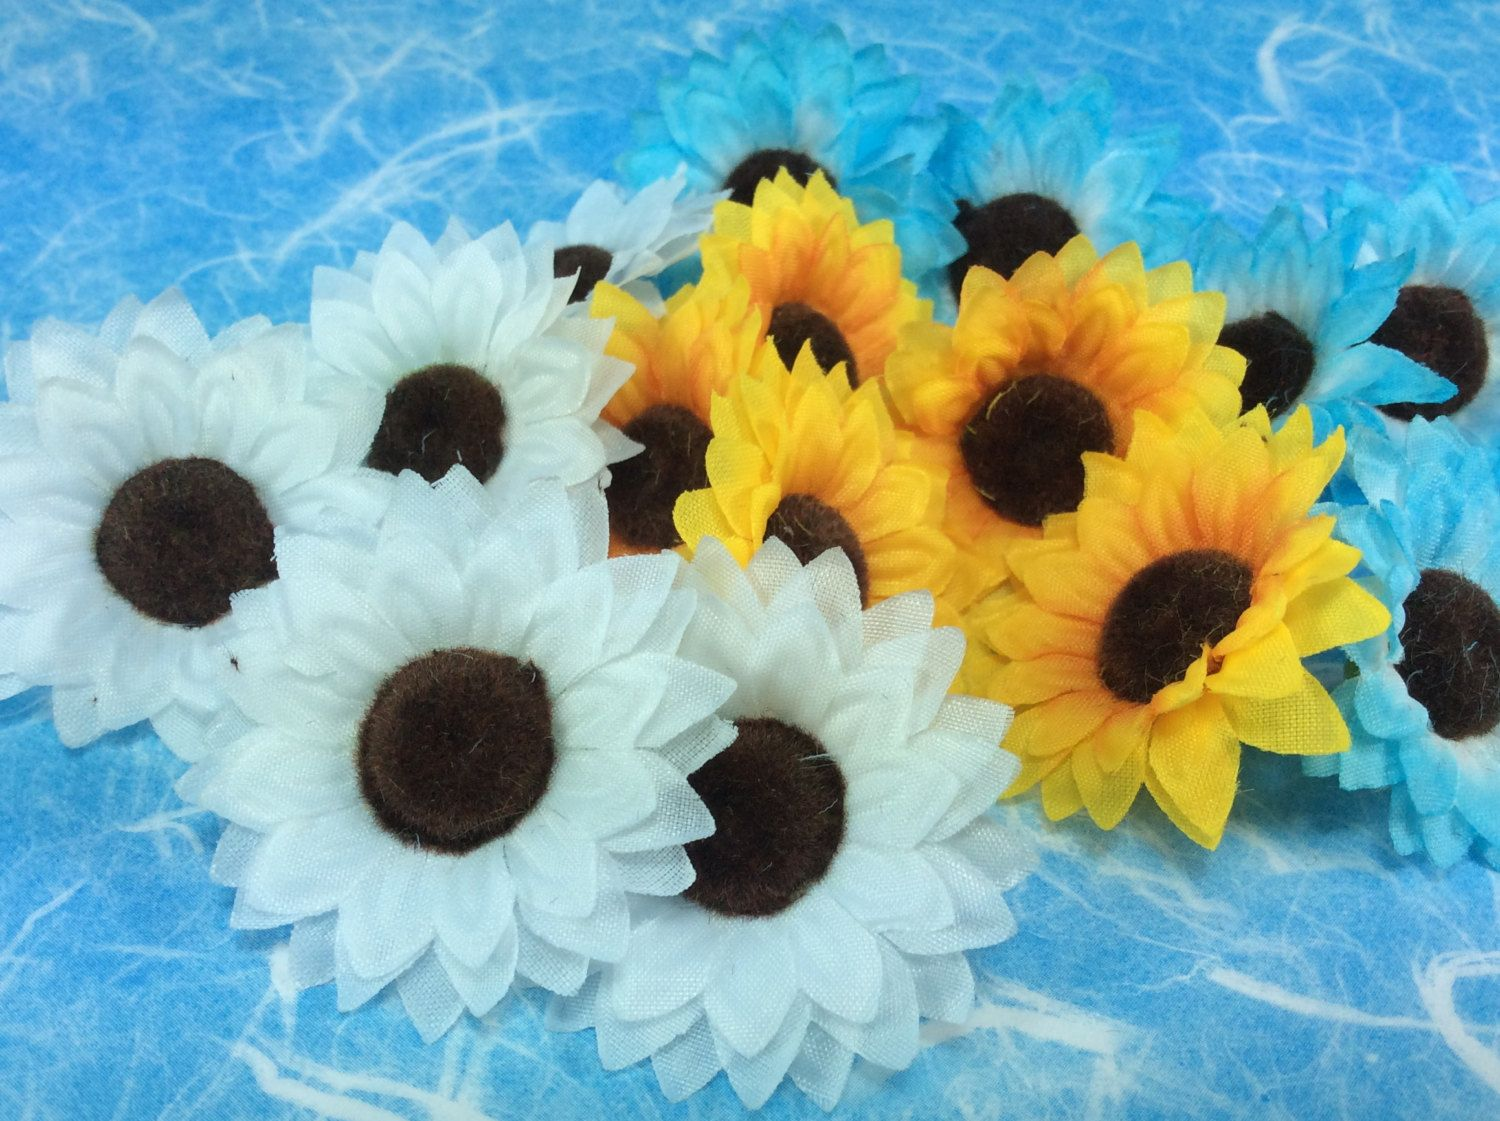 Supply Flowers Floral Blue White Yellow Brown Center Fabric Flower